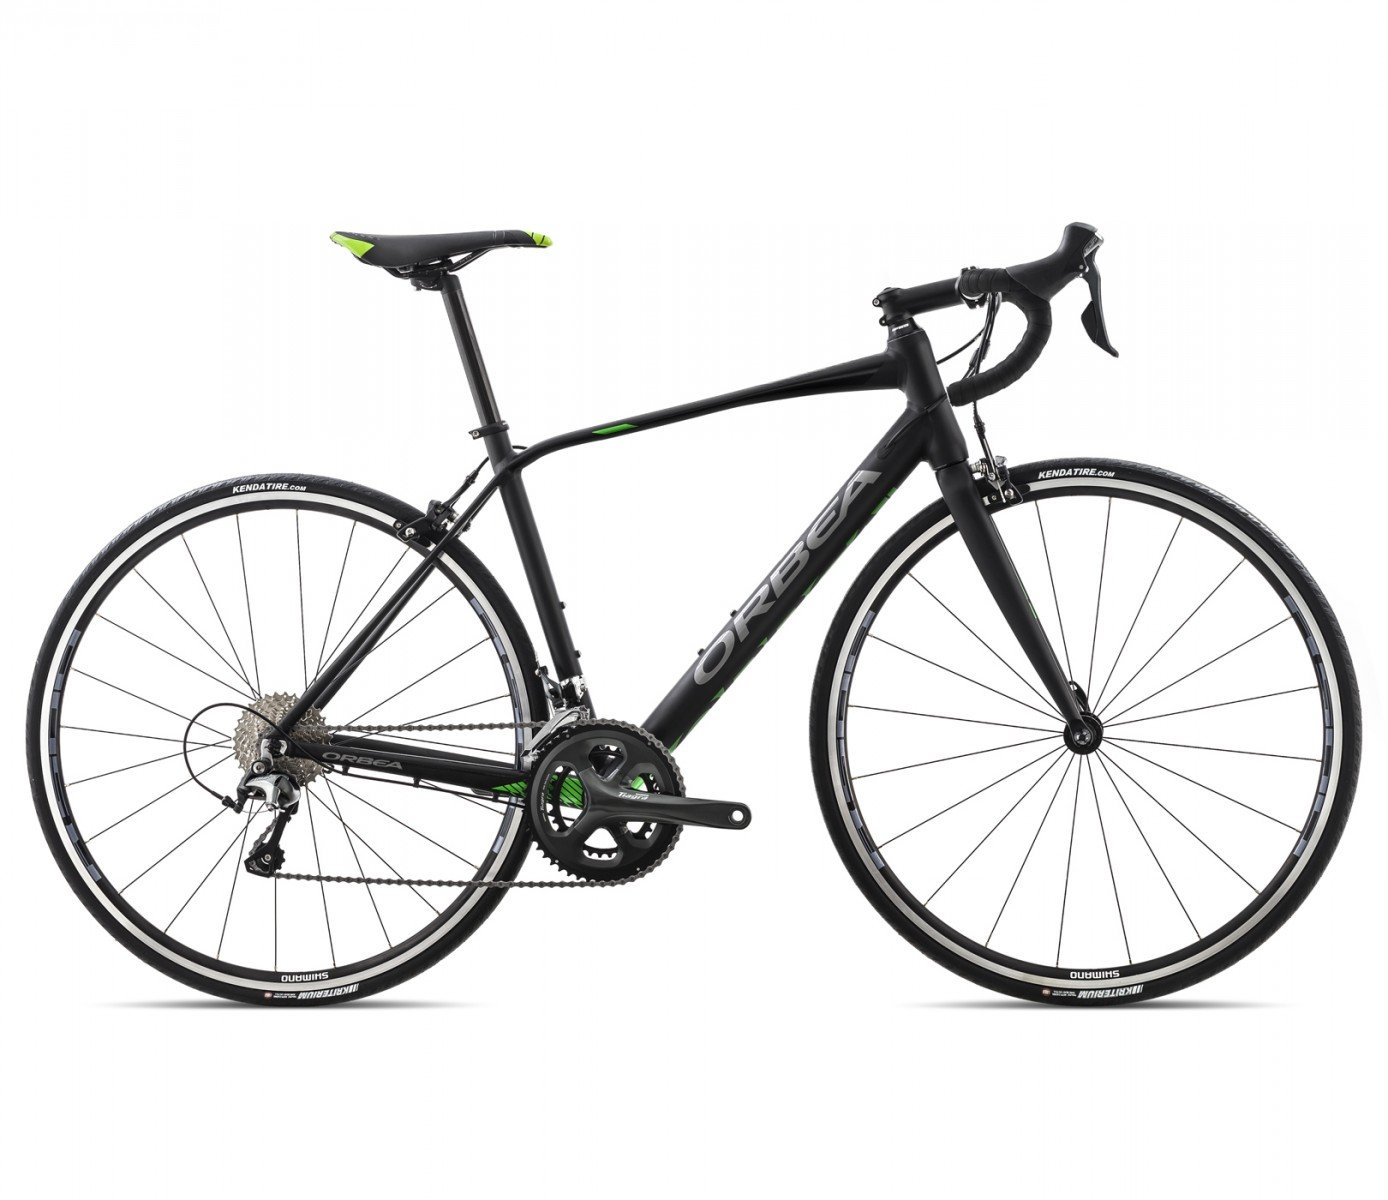 OrbeaAluCarbon_Tiagra_bike_spain (8)